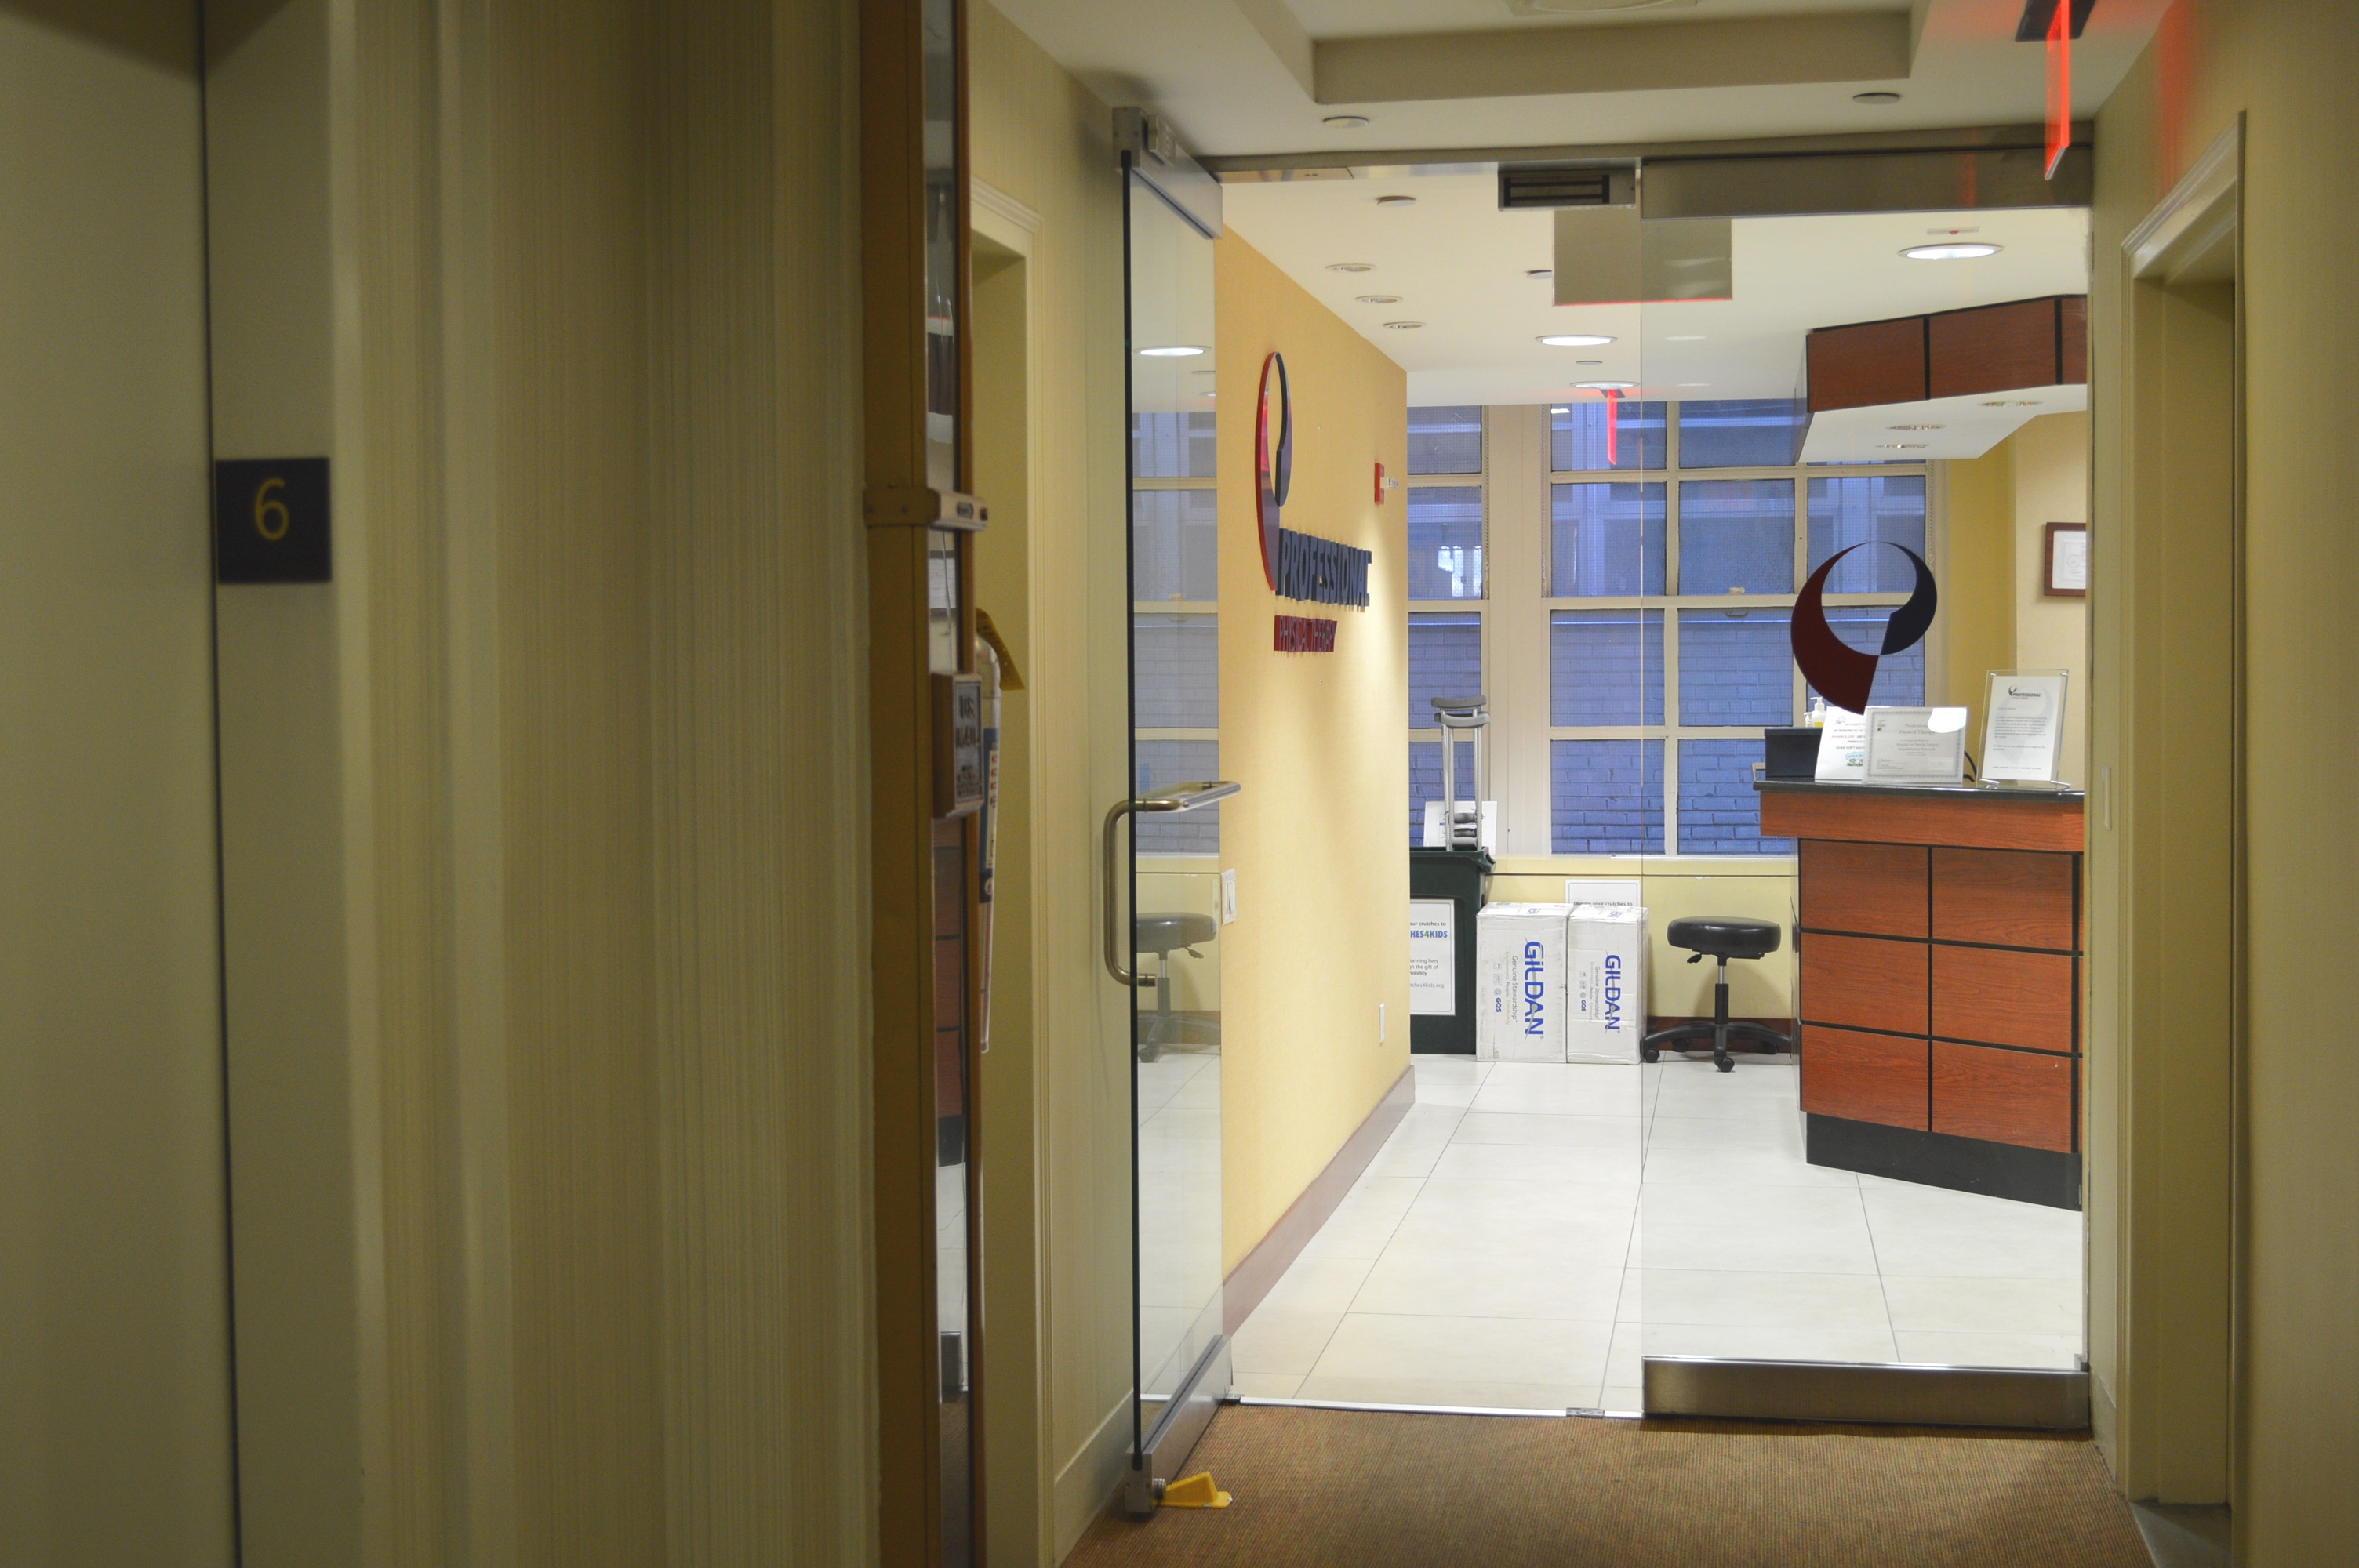 Professional Physical Therapy image 1